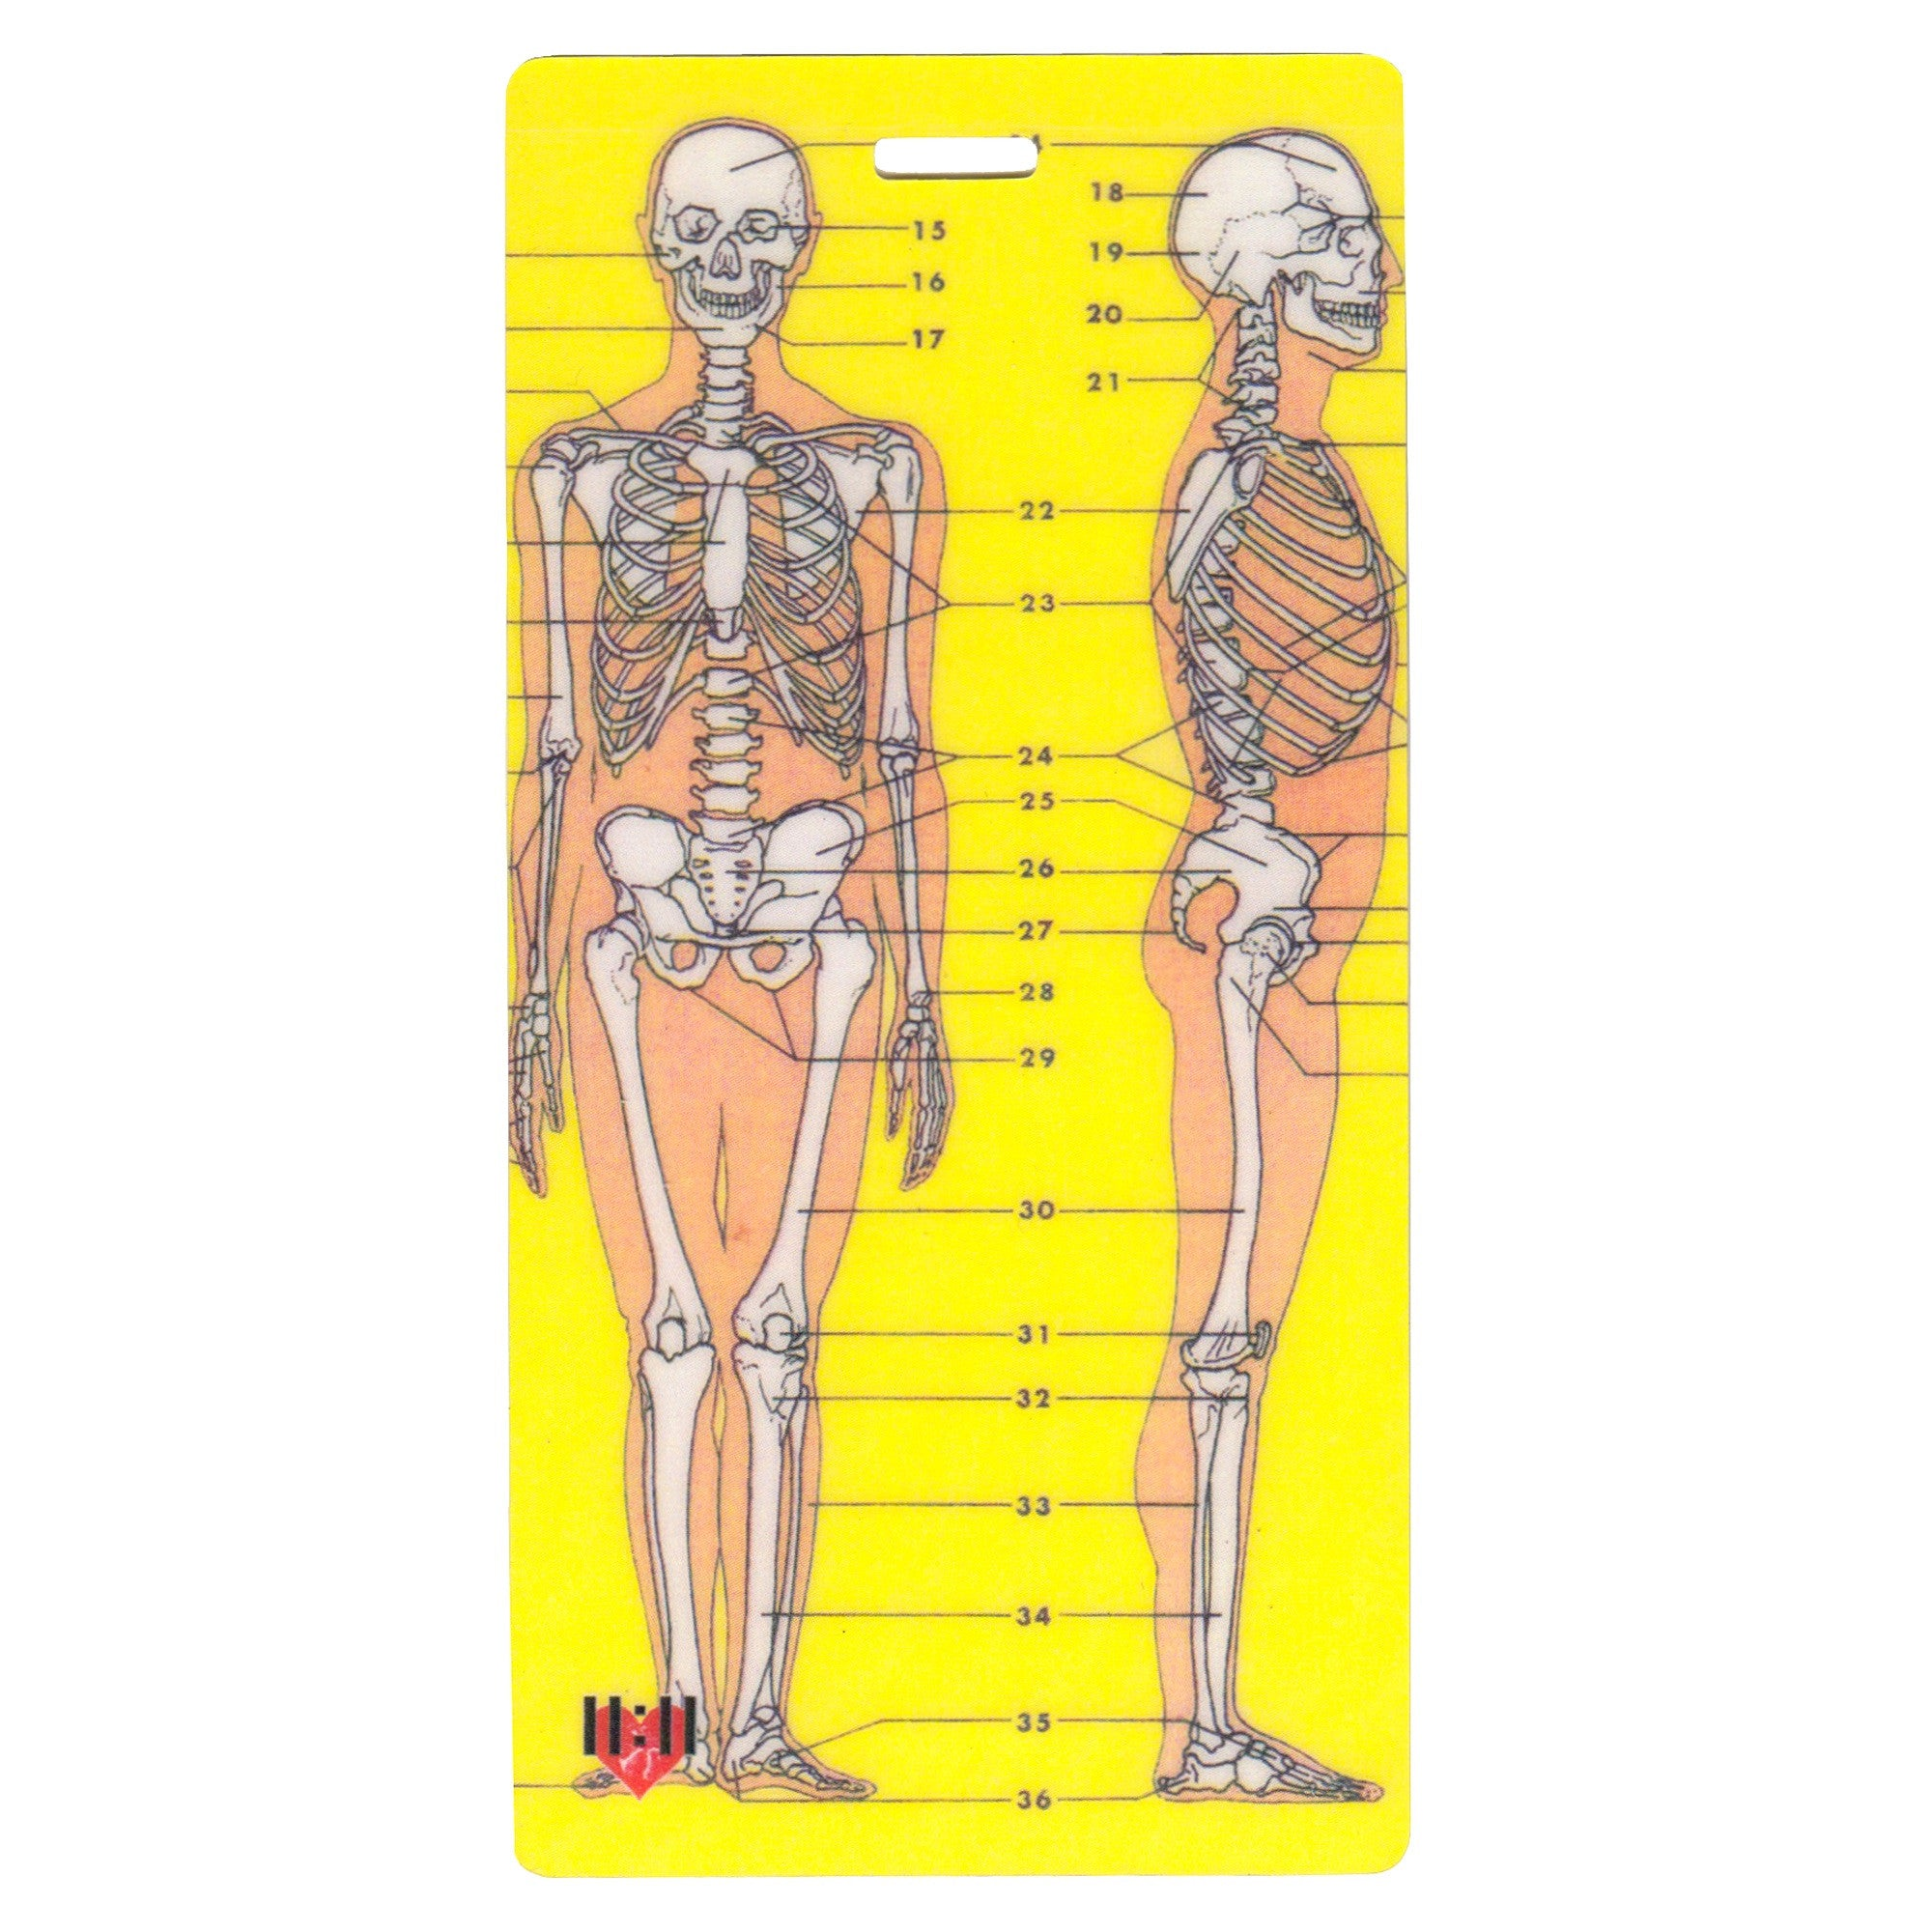 Skeleton Anatomy Luggage Bag Tag Set - 2 pc, Large by 11:11 Enterprises